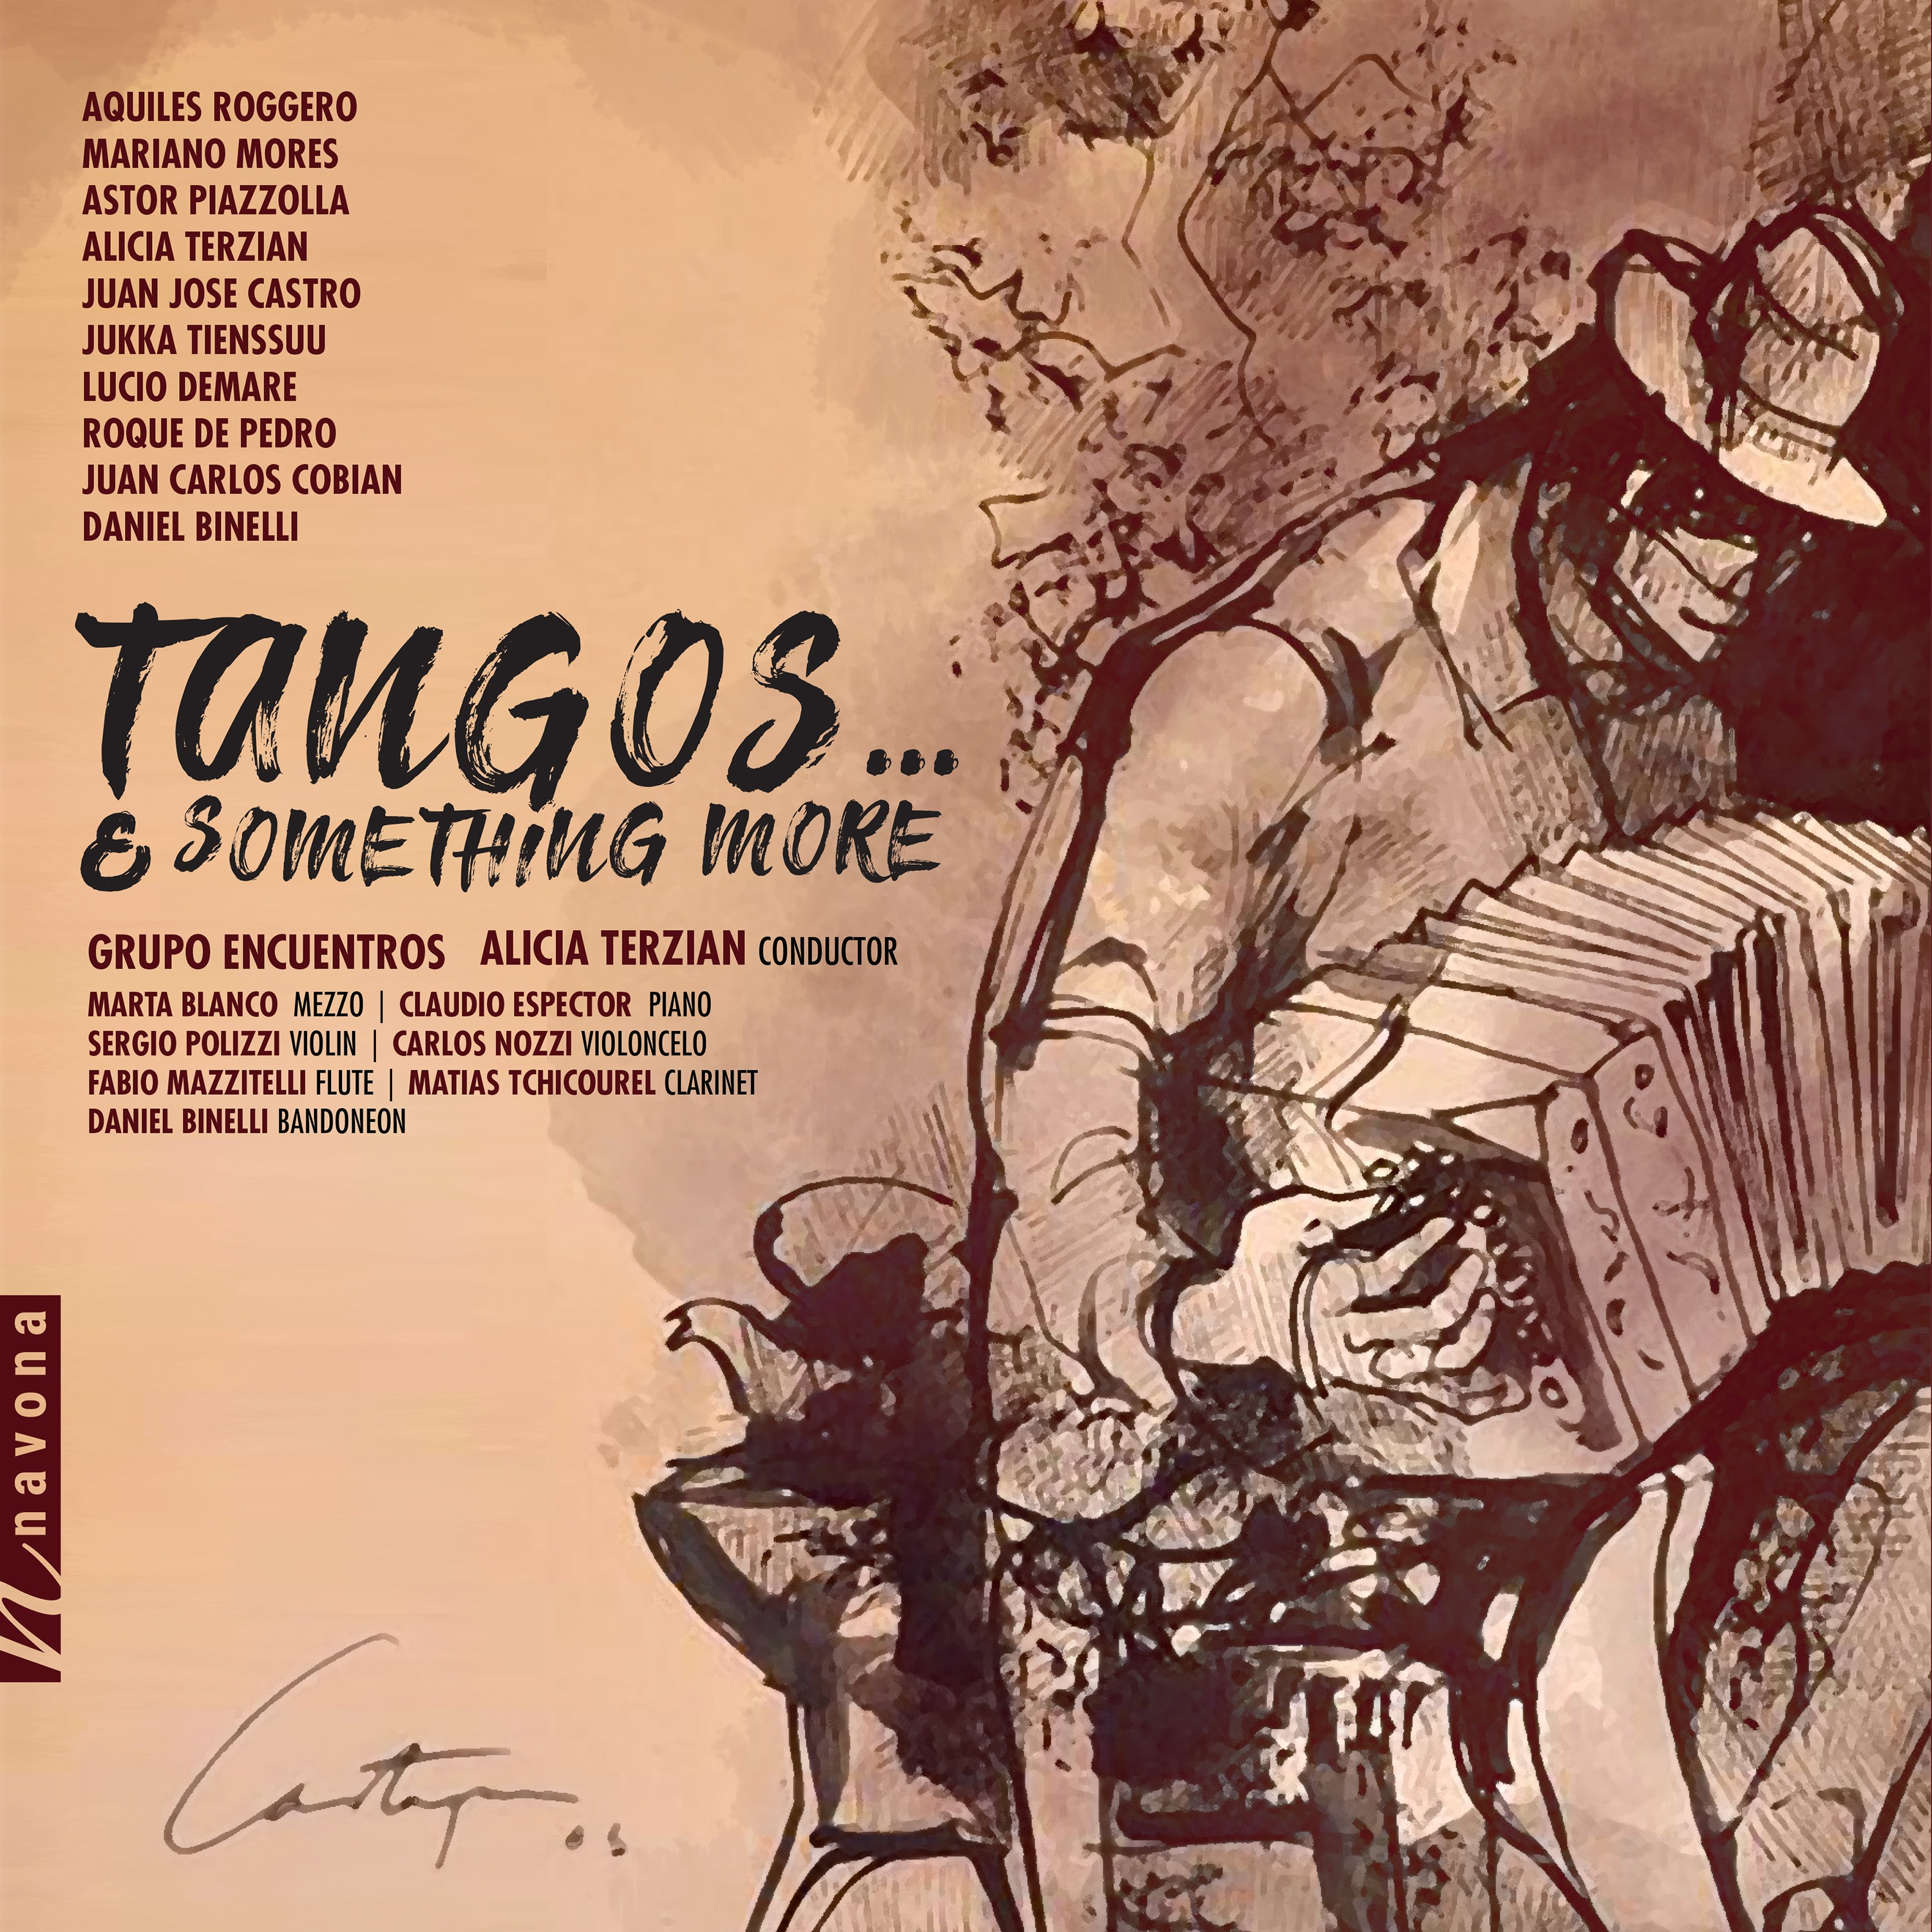 15090 PARMA Recordings - Tangos And Something More Classical